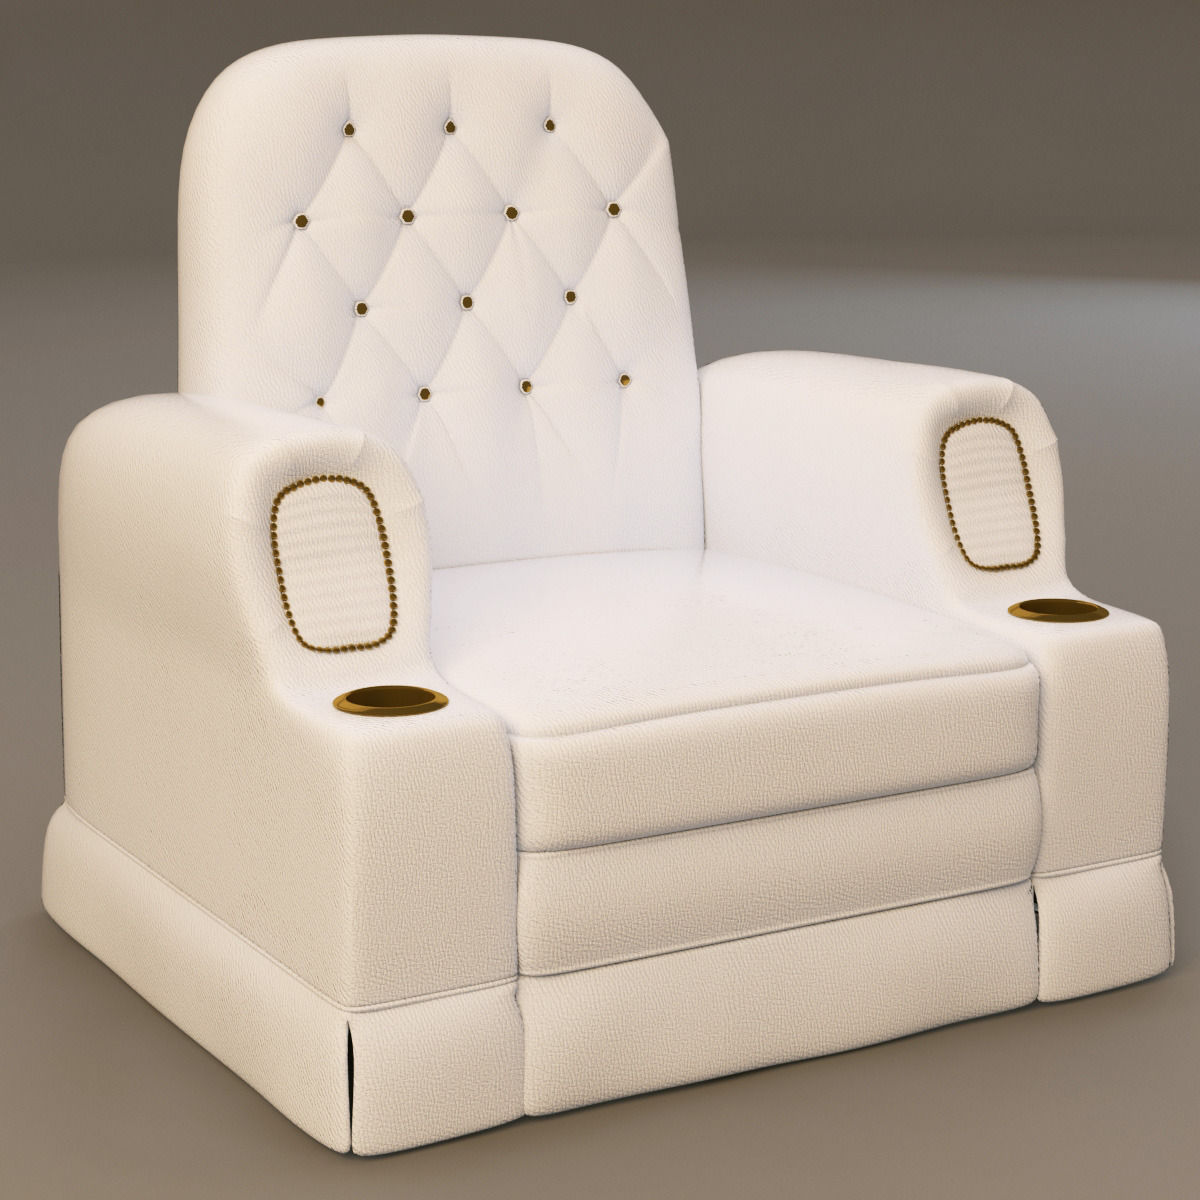 Cinema Seat armchair 3D | CGTrader